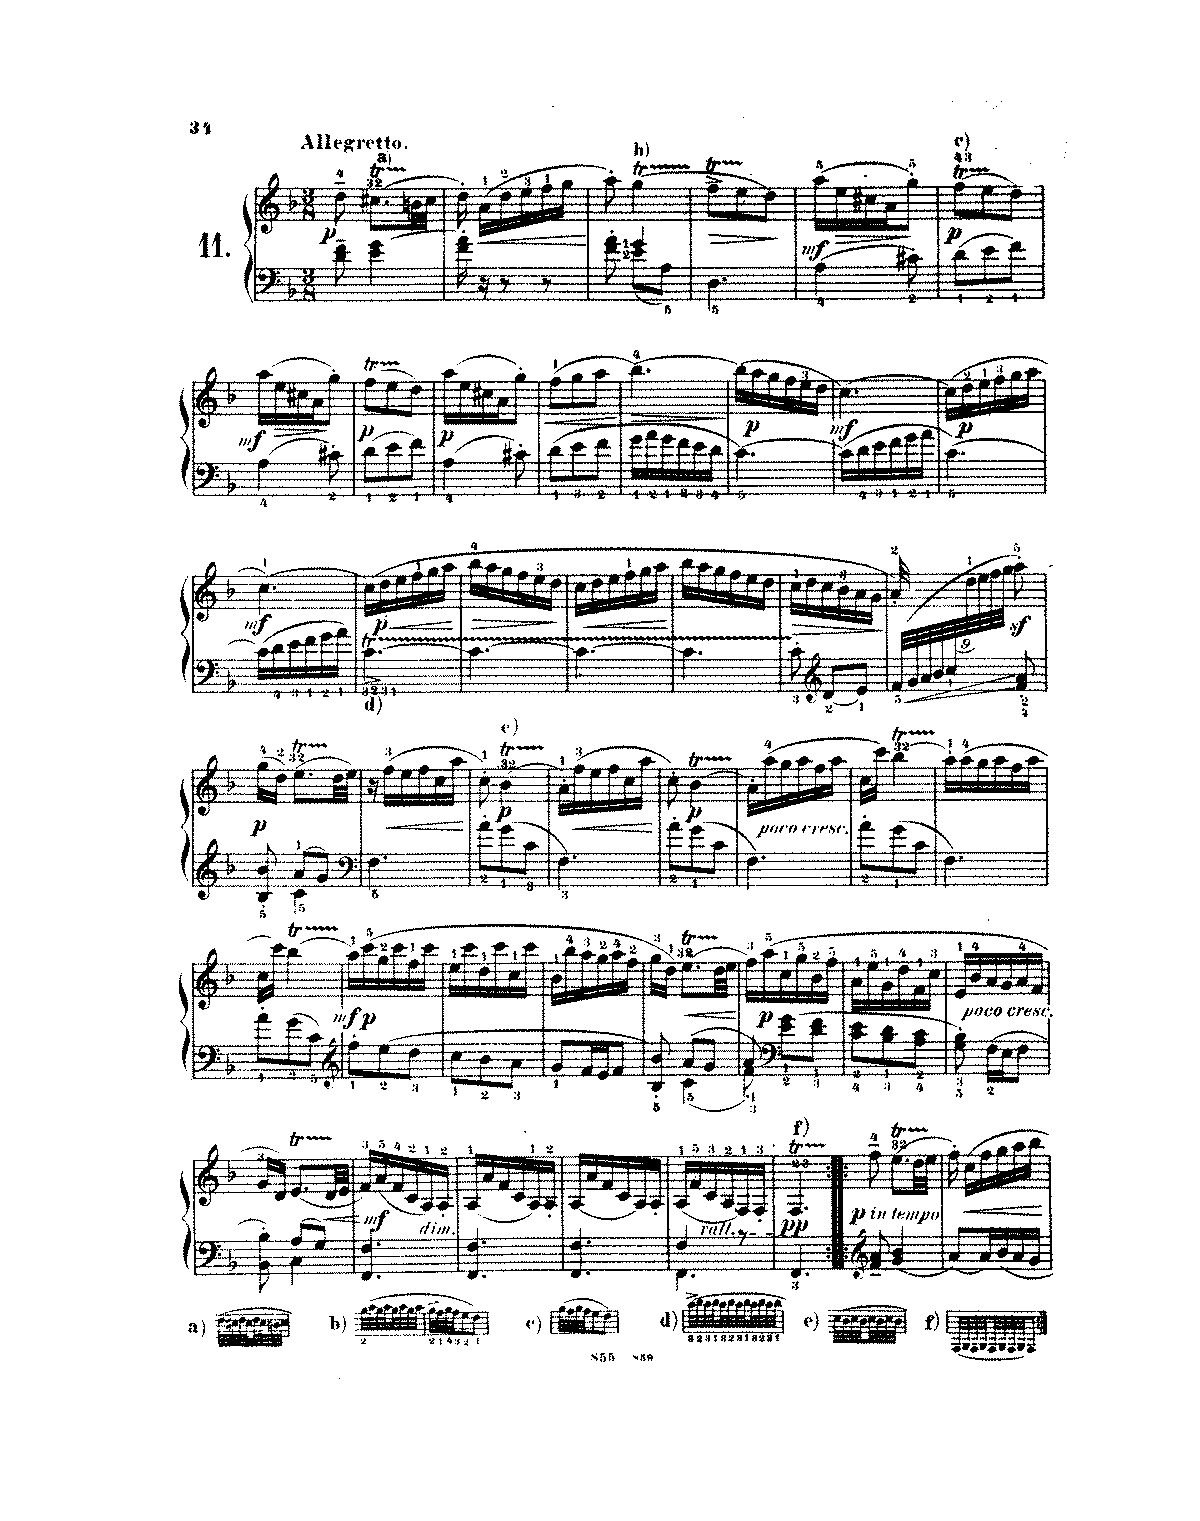 PMLP330390-Sibley1802.22722 - No. 11 - Sonata in D minor, K. 5.pdf